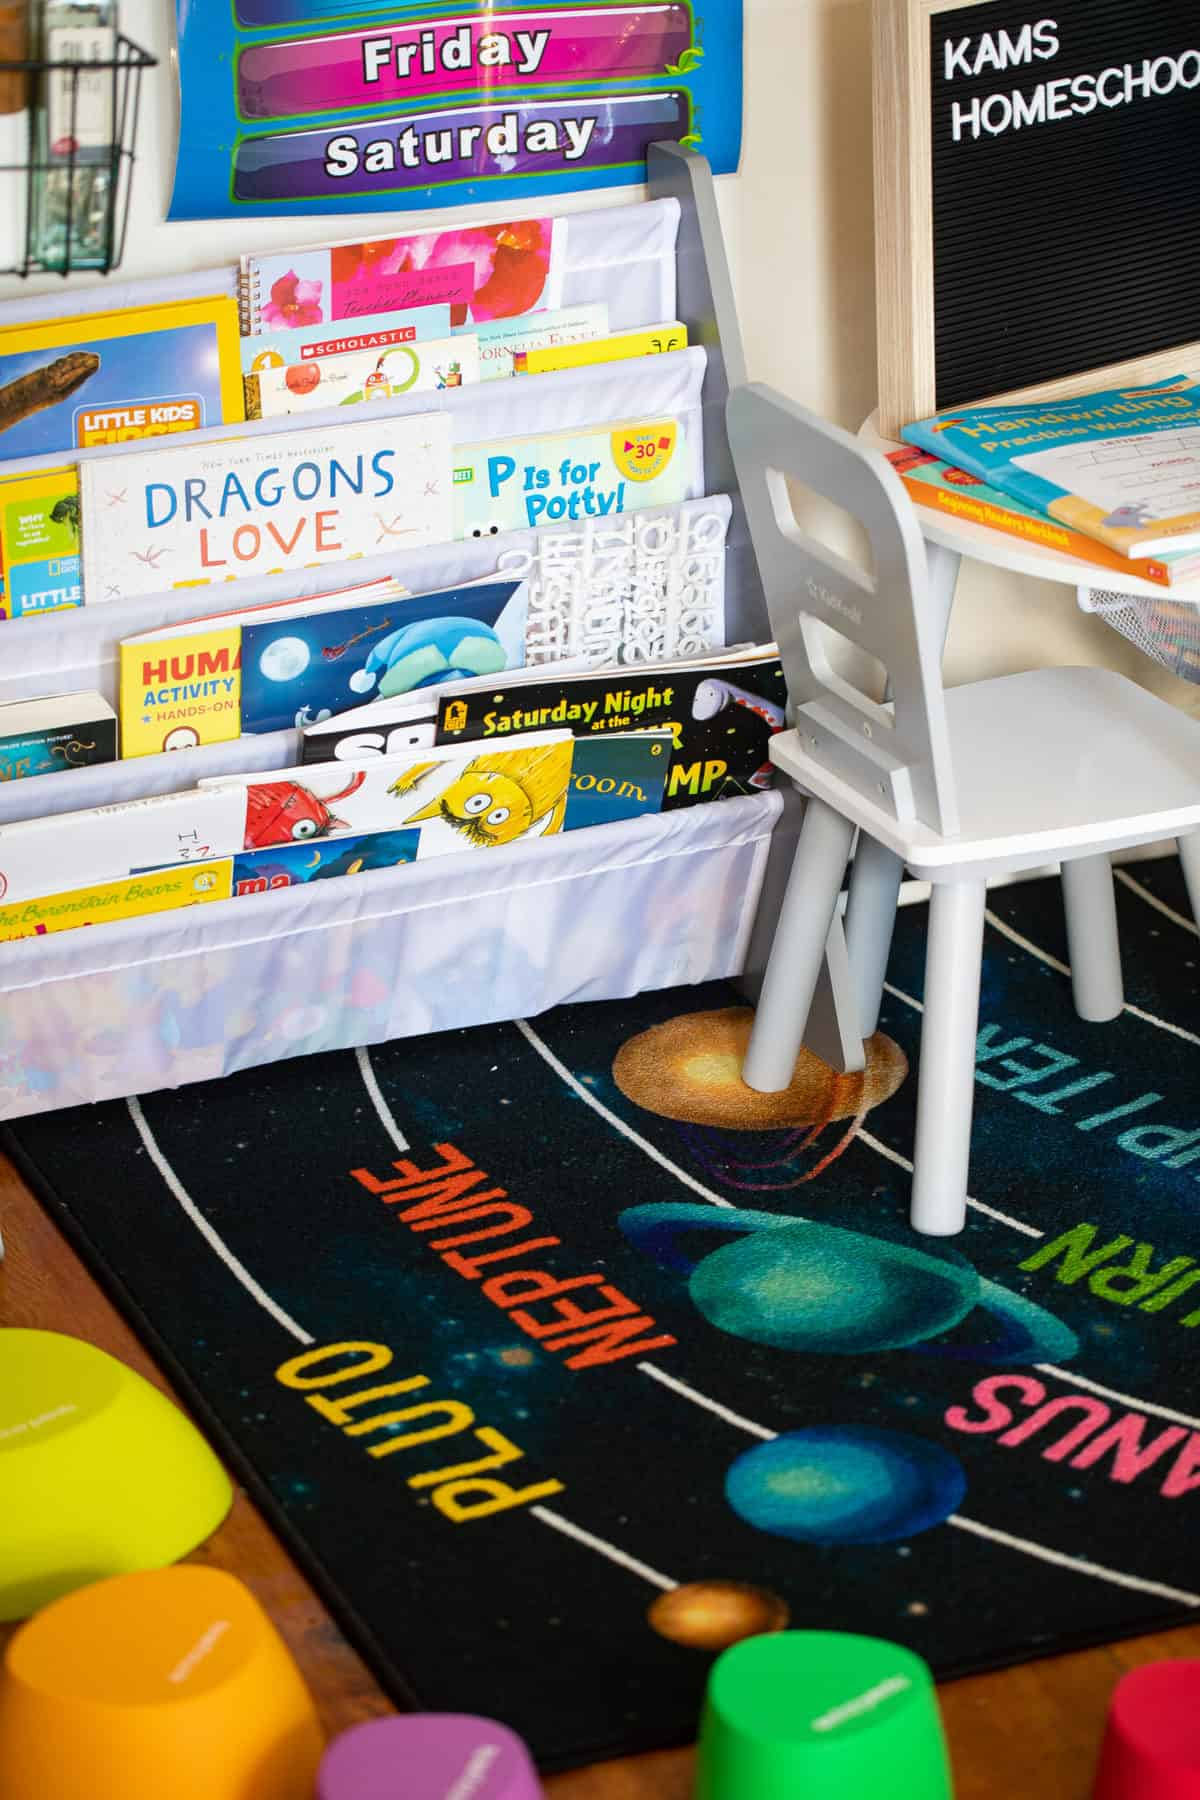 DIY Homeschool Room Ideas For a Small Space